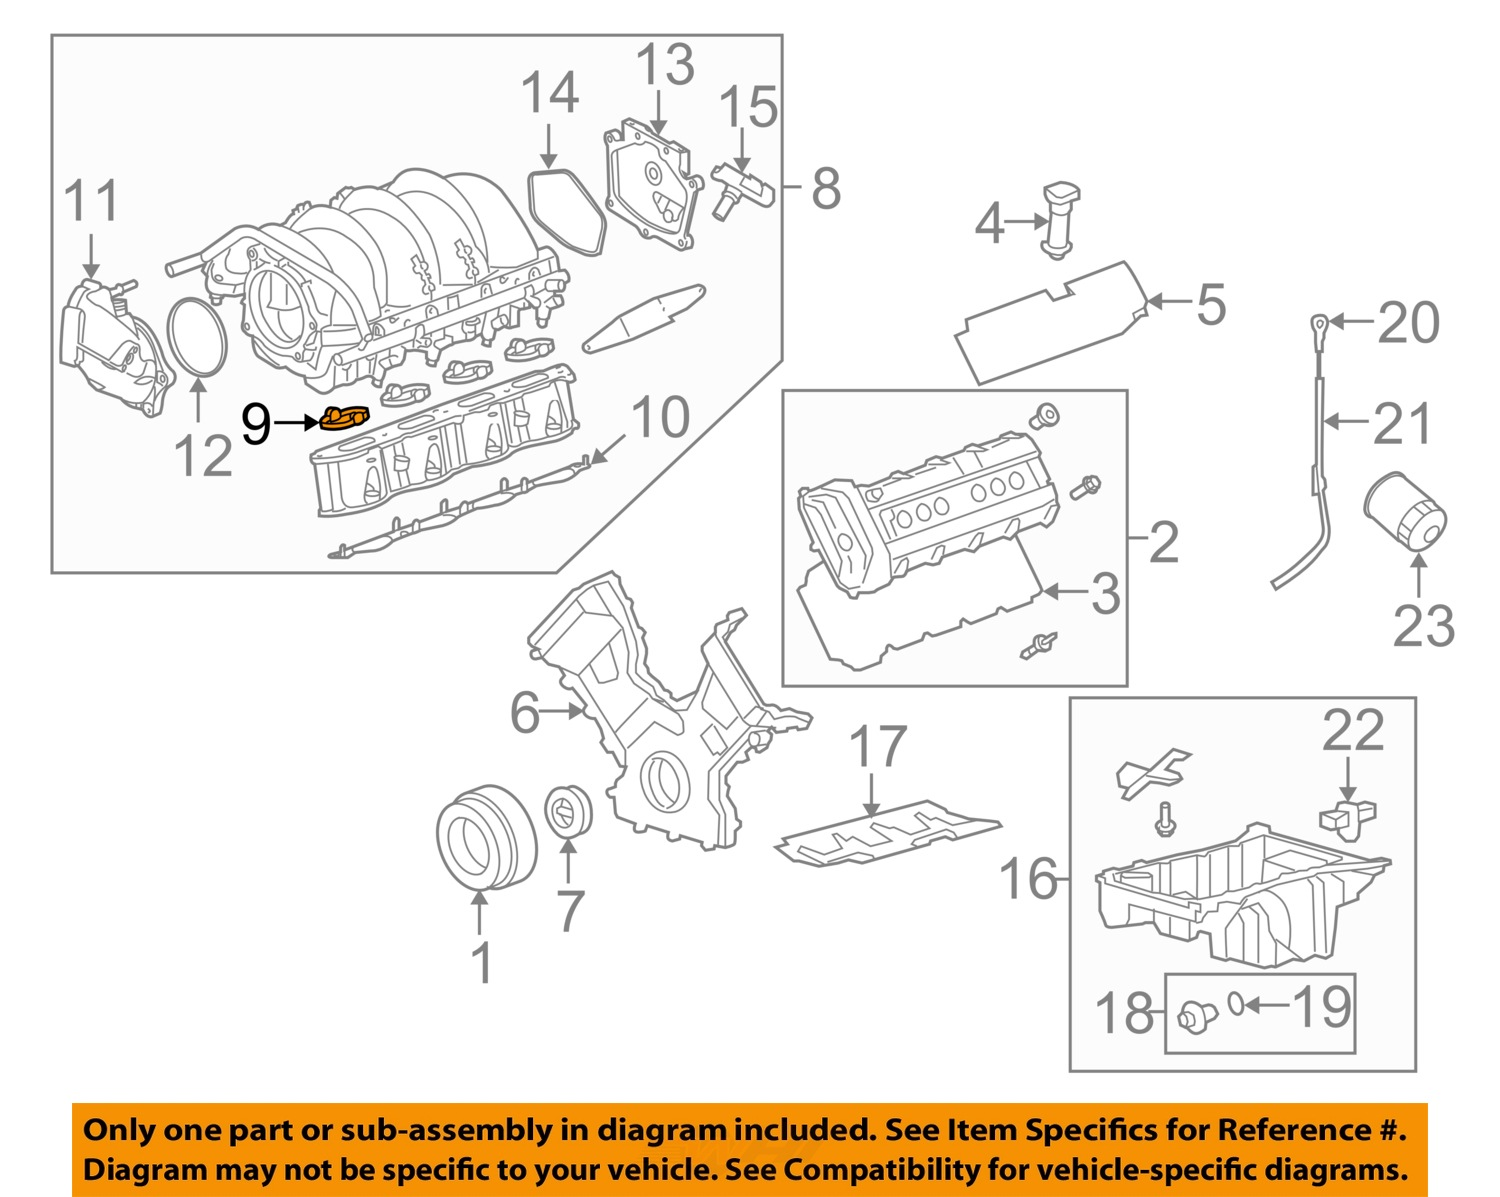 hight resolution of 2001 range rover engine diagram trusted wiring diagram 2 5 land rover motor diagram 2005 range